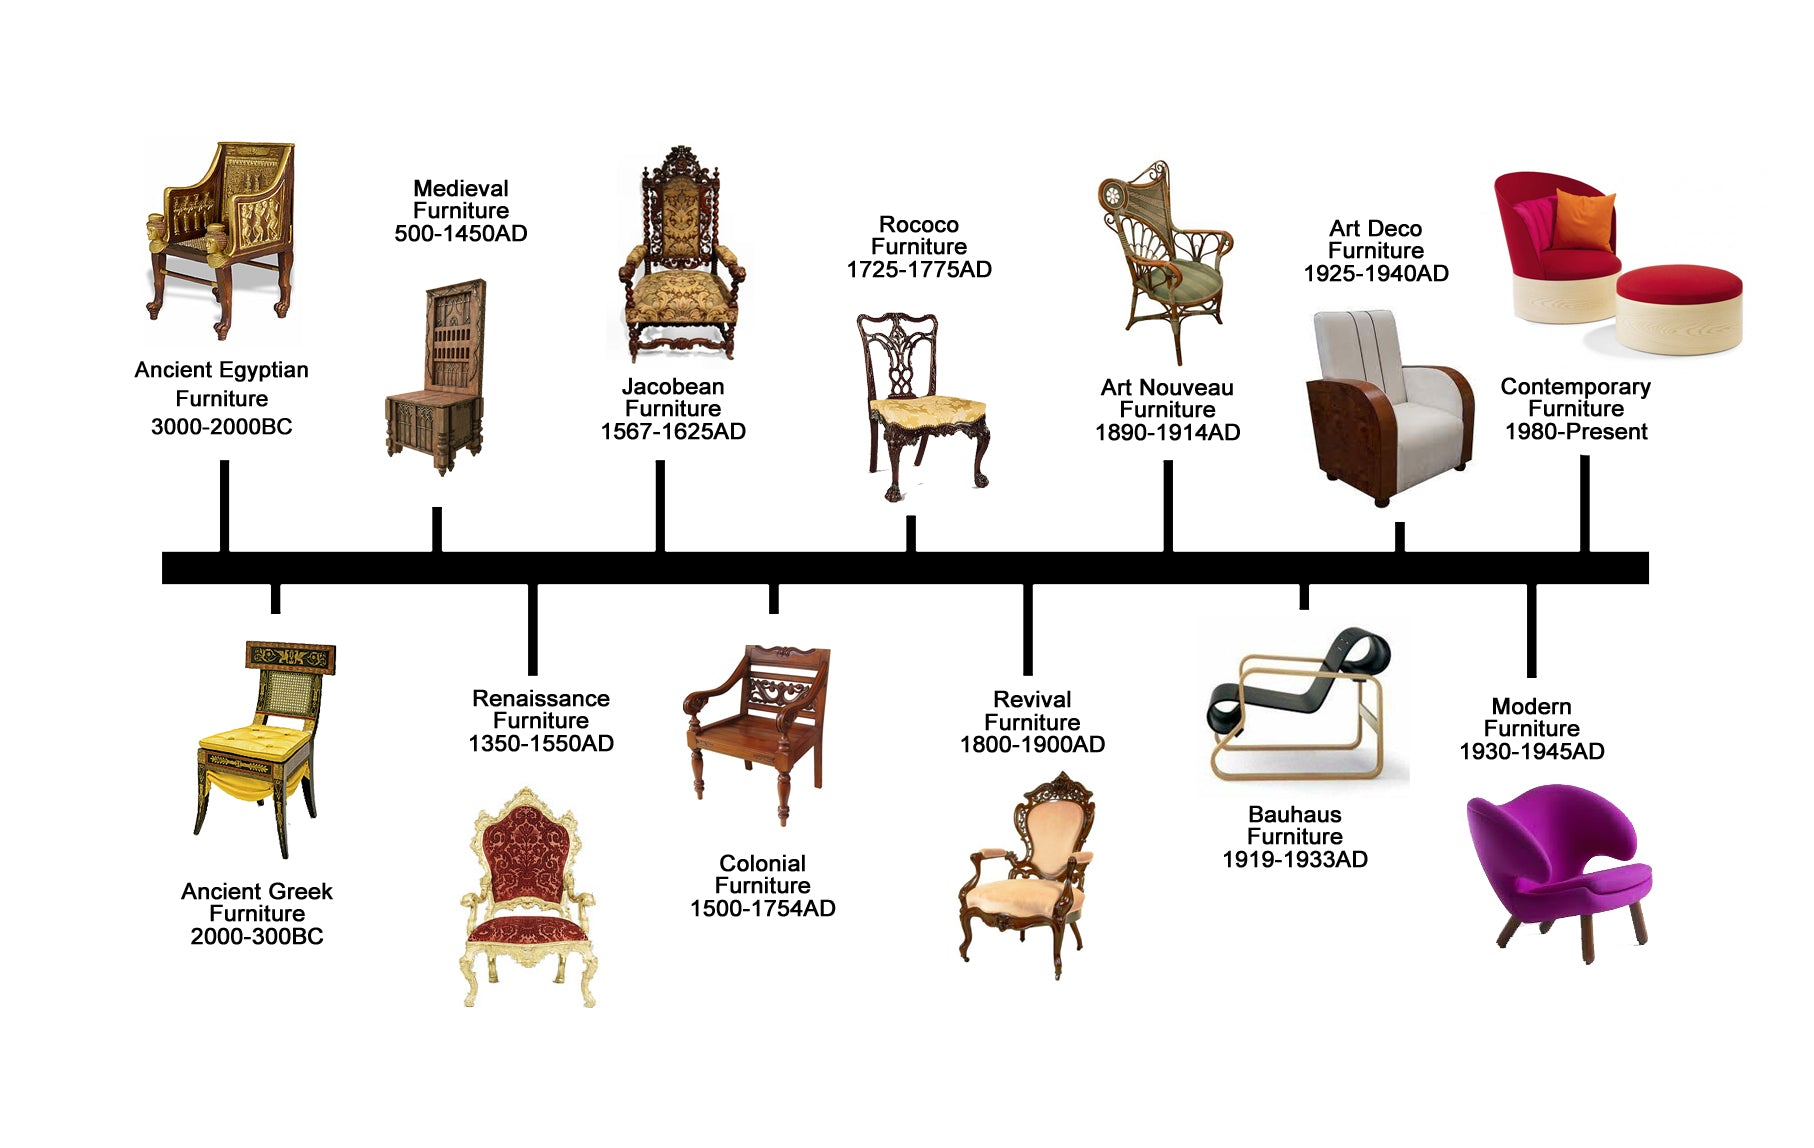 FURNITURE DESIGN HISTORY